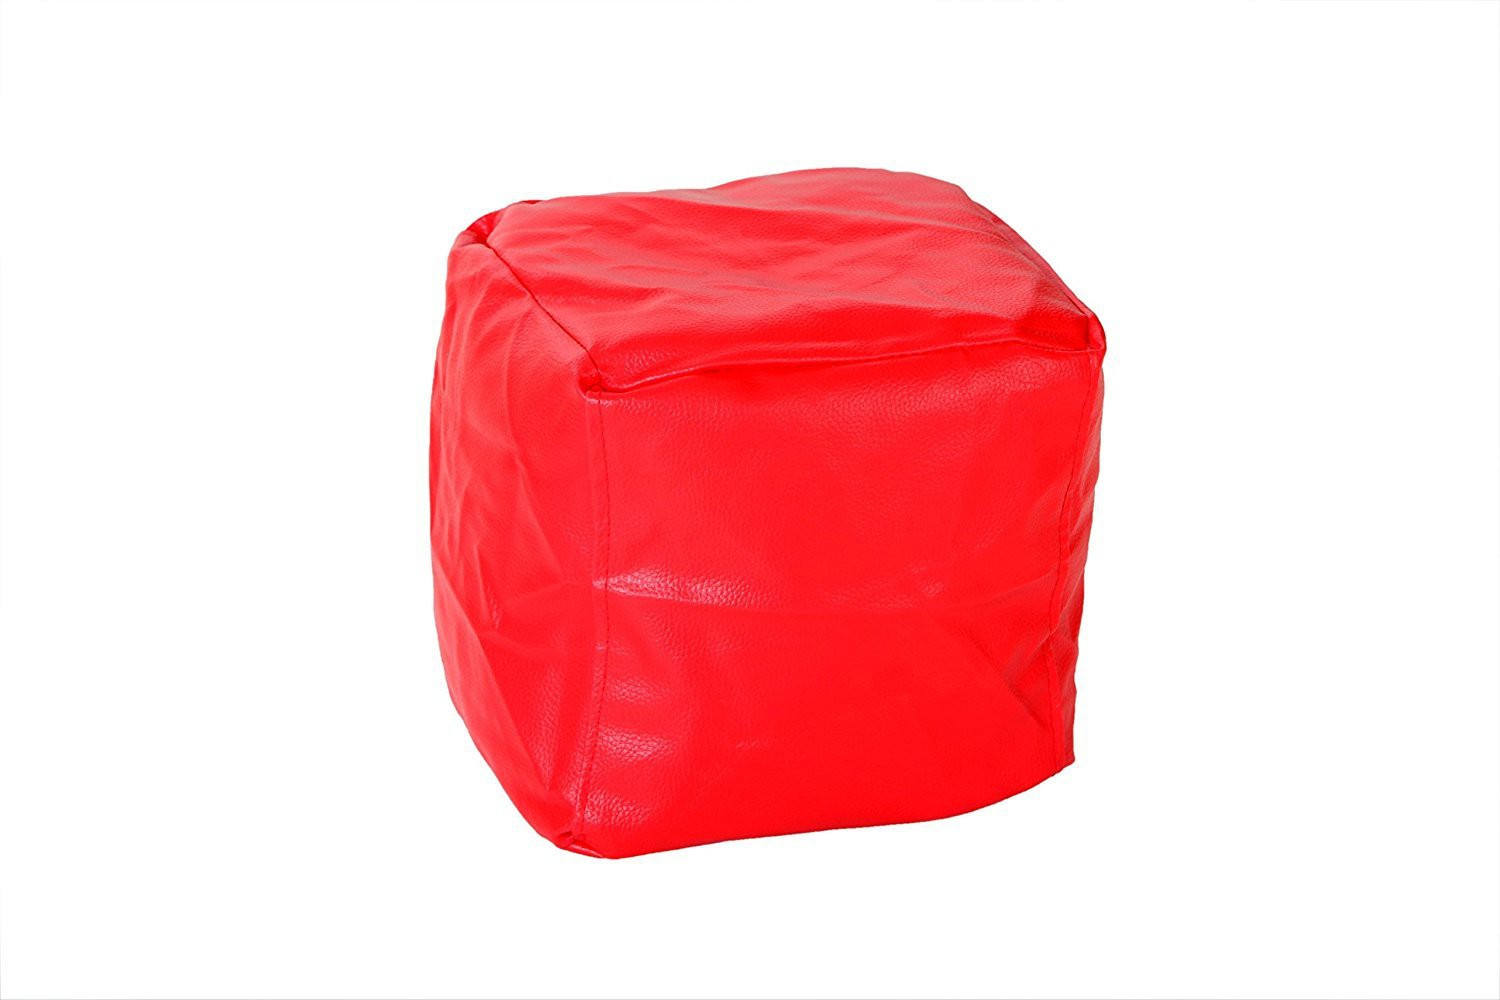 View Furniture Land Medium Bean Bag Cover(Red) Furniture (Furniture Land)